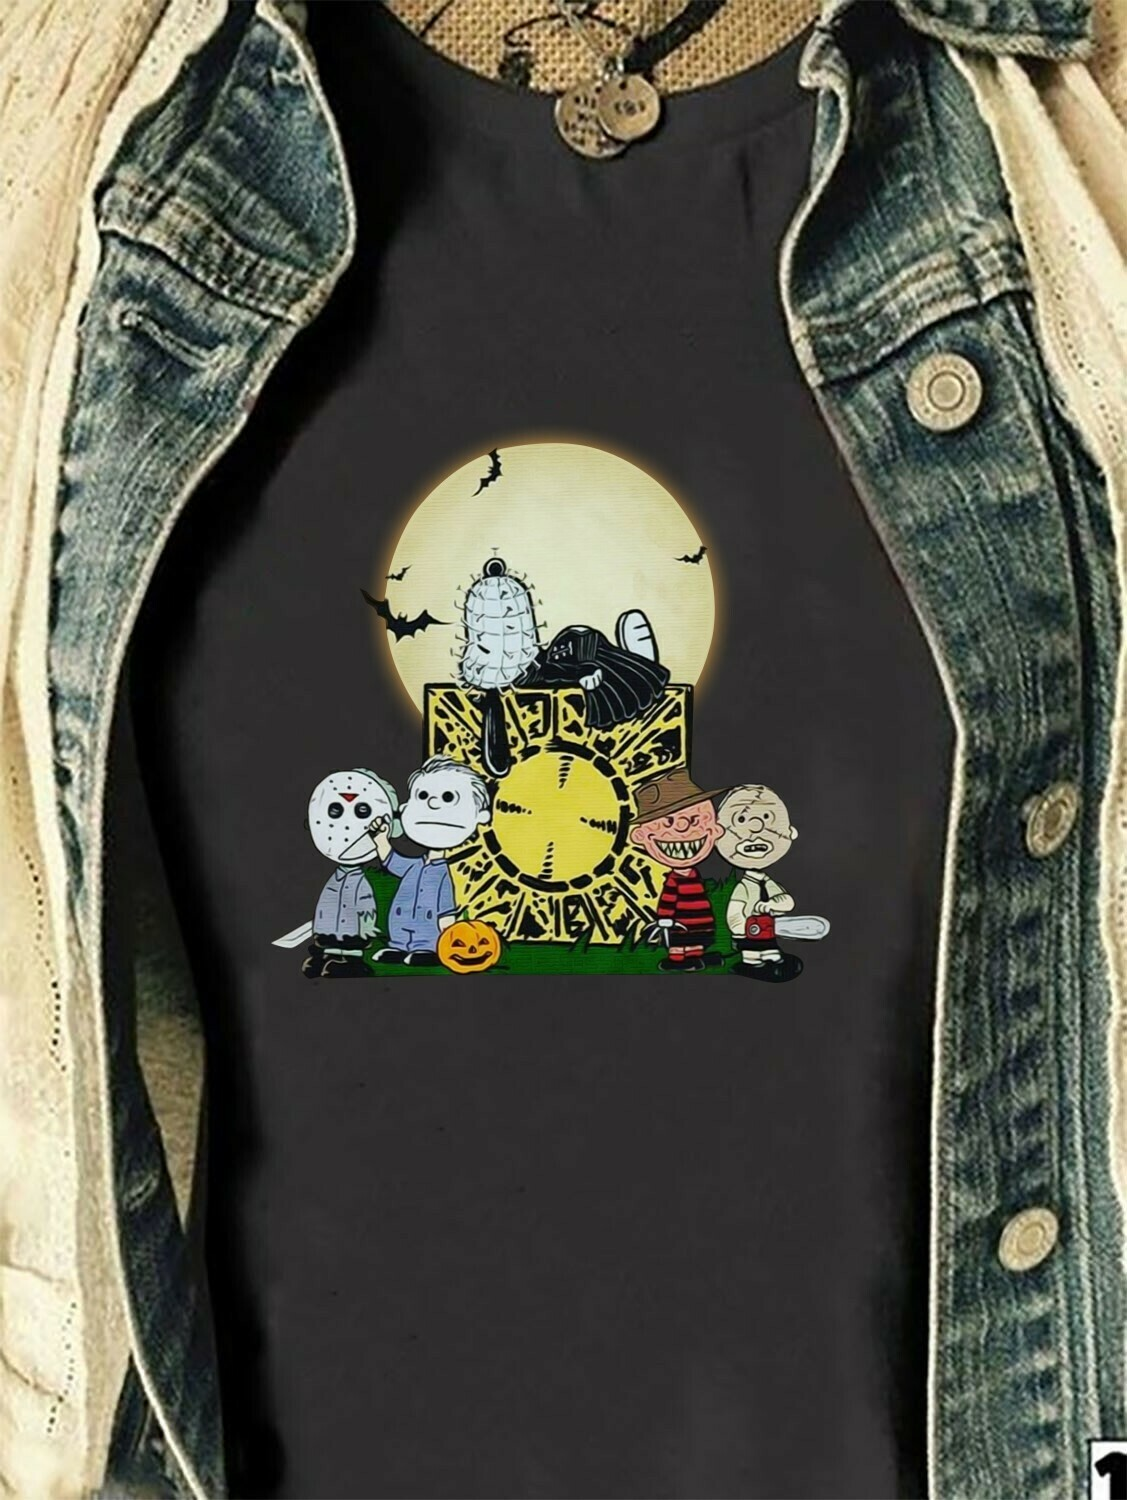 Funny Snoopy Friends Halloween Gift For Lover Snoopy Cosplay Horror Movie Halloween Movies Friday The 13th Villains Halloween Squad TShirt Long Sleeve Sweatshirt Hoodie Jolly Family Gifts